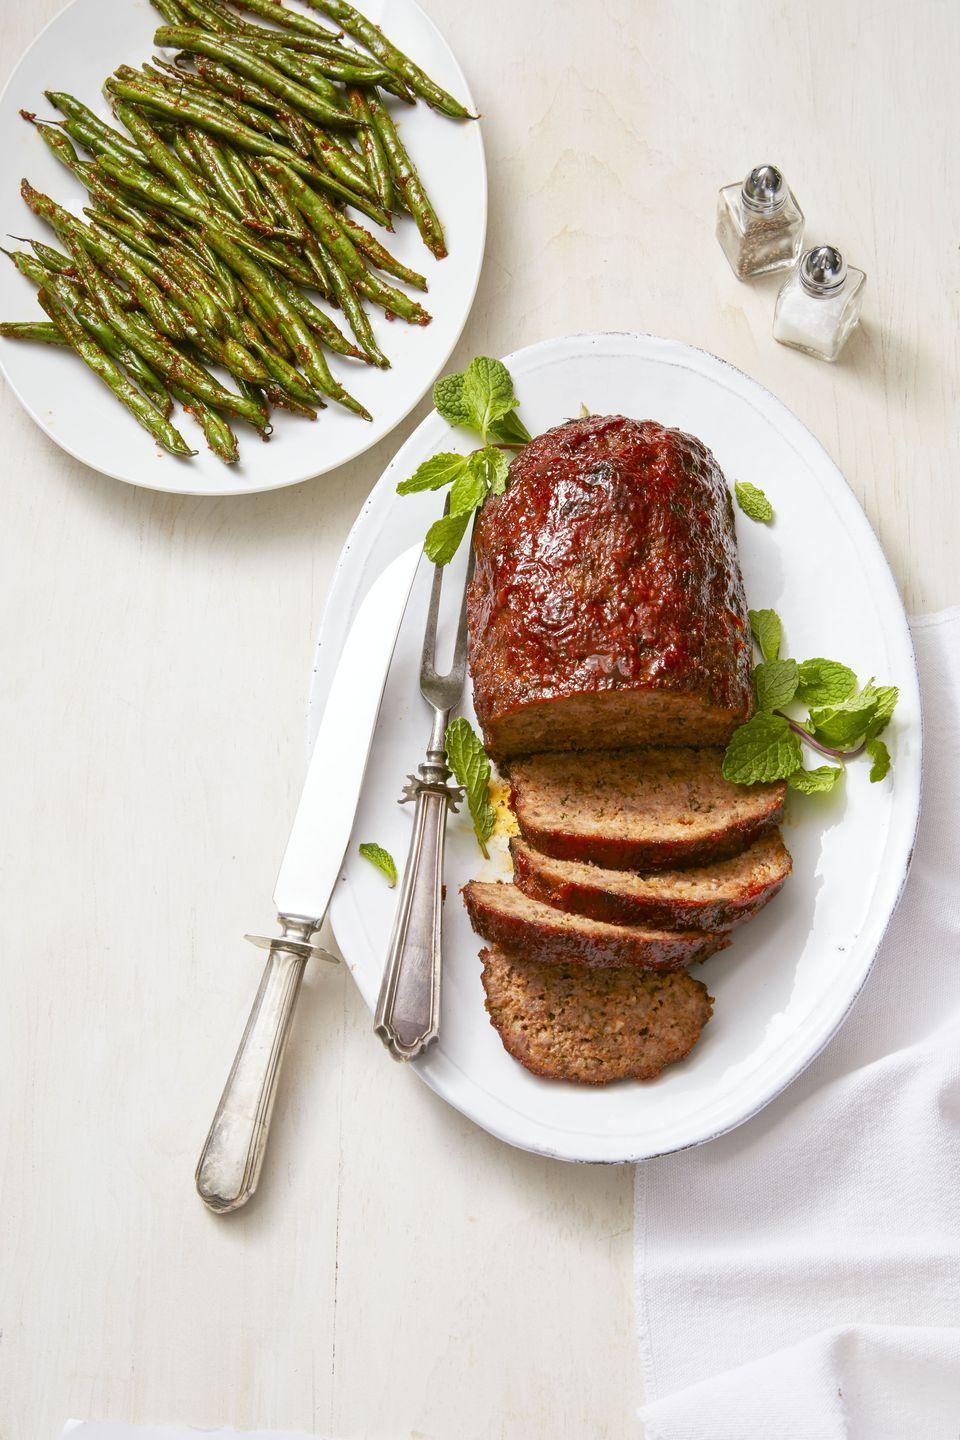 "<p>Gochujang (a Korean fermented chile paste) adds a mix of sweet, savory and sour so perfect that no one can accuse this dinner of being bland. </p><p><a href=""https://www.goodhousekeeping.com/food-recipes/easy/a36249/gochujang-glazed-meatloaf/"" rel=""nofollow noopener"" target=""_blank"" data-ylk=""slk:Get the recipe for Gochujang Glazed Meatloaf »"" class=""link rapid-noclick-resp""><span class=""redactor-invisible-space""><em><span class=""redactor-invisible-space""><span class=""redactor-invisible-space"">Get the recipe for Gochujang Glazed Meatloaf </span>»</span> </em></span></a><br></p>"